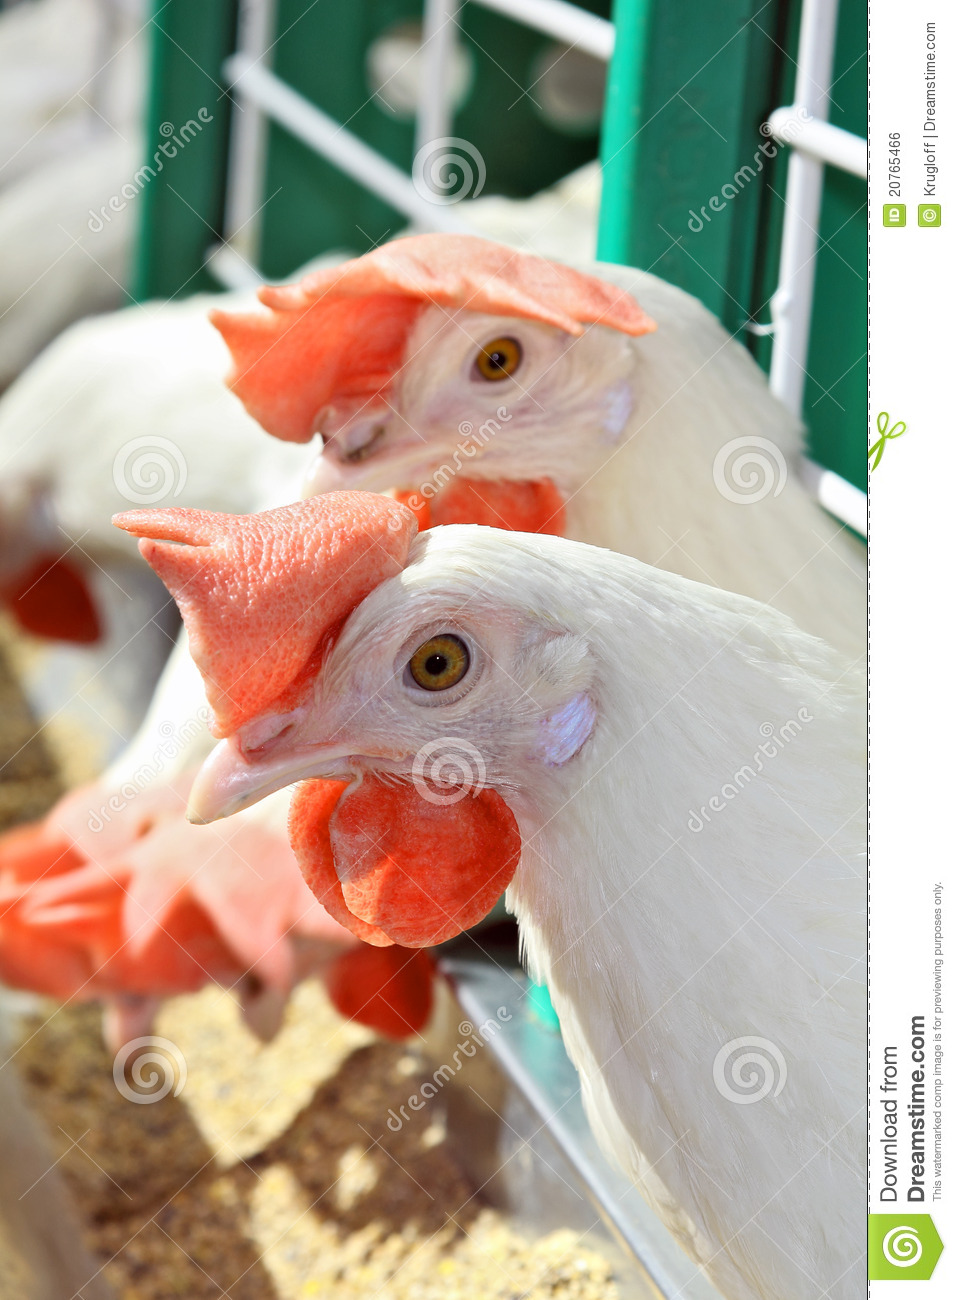 White chickens in cage